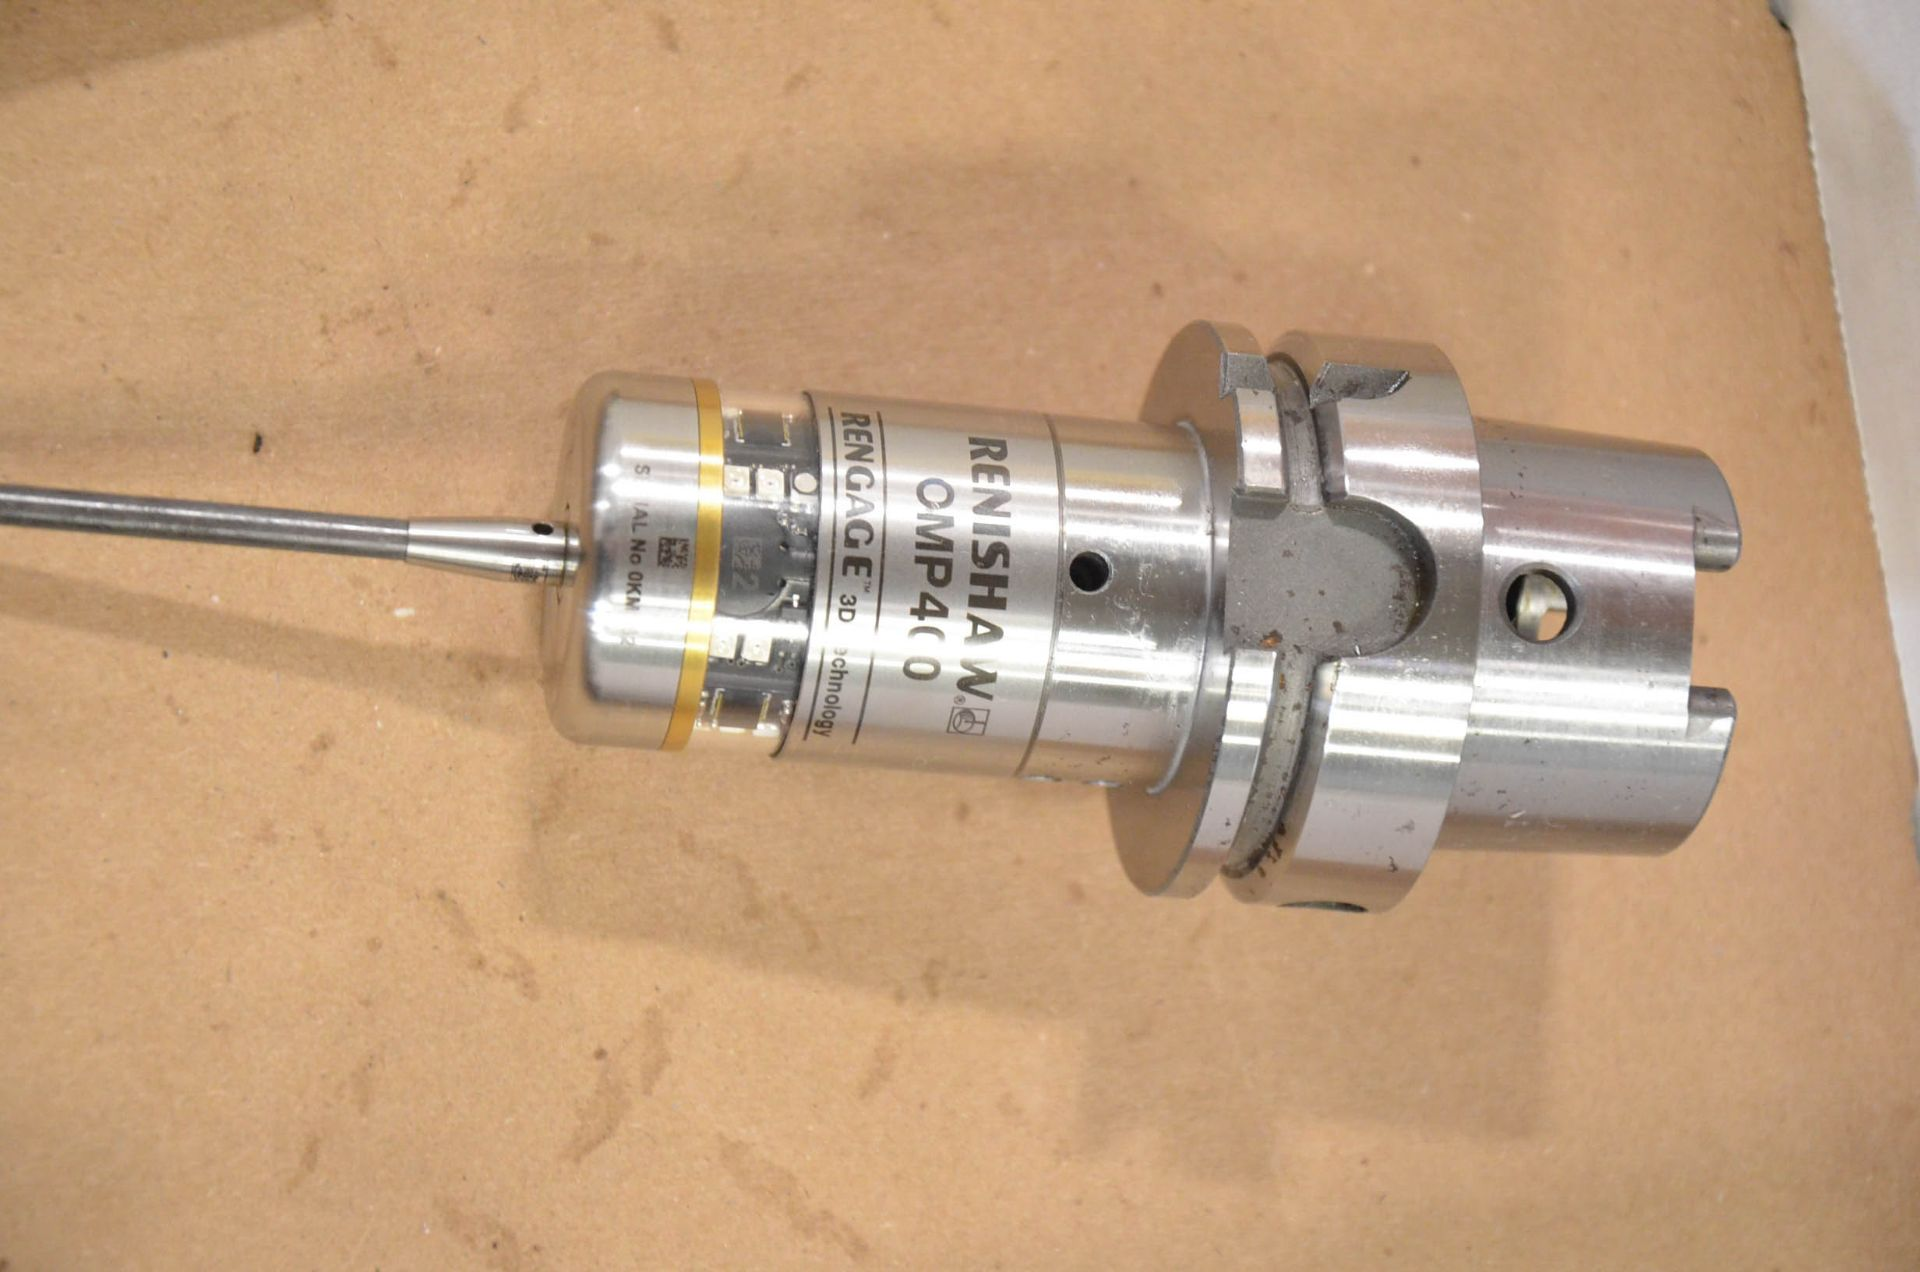 LOT/ RENISHAW OMP400 HSK-A63 TOUCH PROBE, S/N 0KMR62; HSK-A63 CALIBRATION BALL - Image 3 of 4